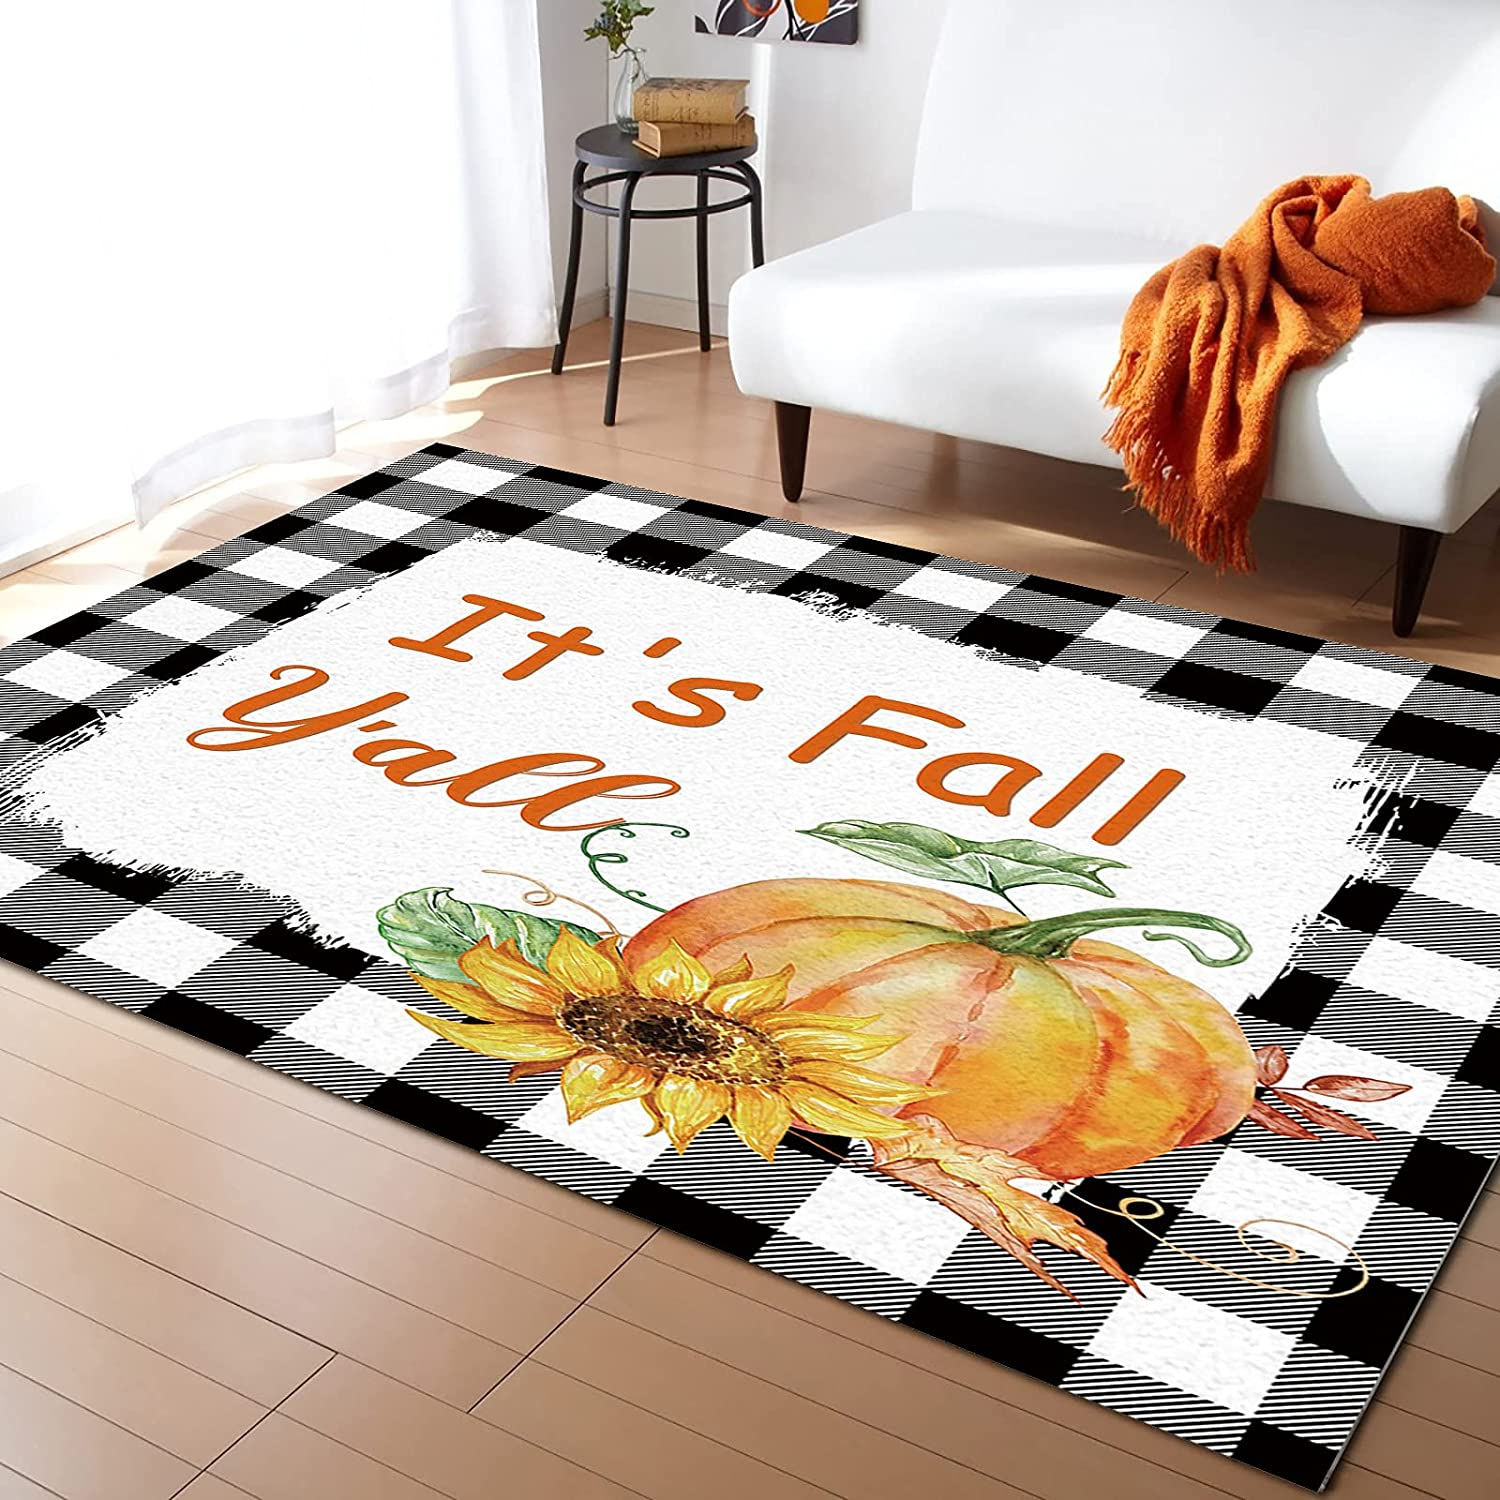 ARTSHOWING Save money Plaid Area Rug Shipping included 5' x Sofa Durable for Floor Carpet 8'